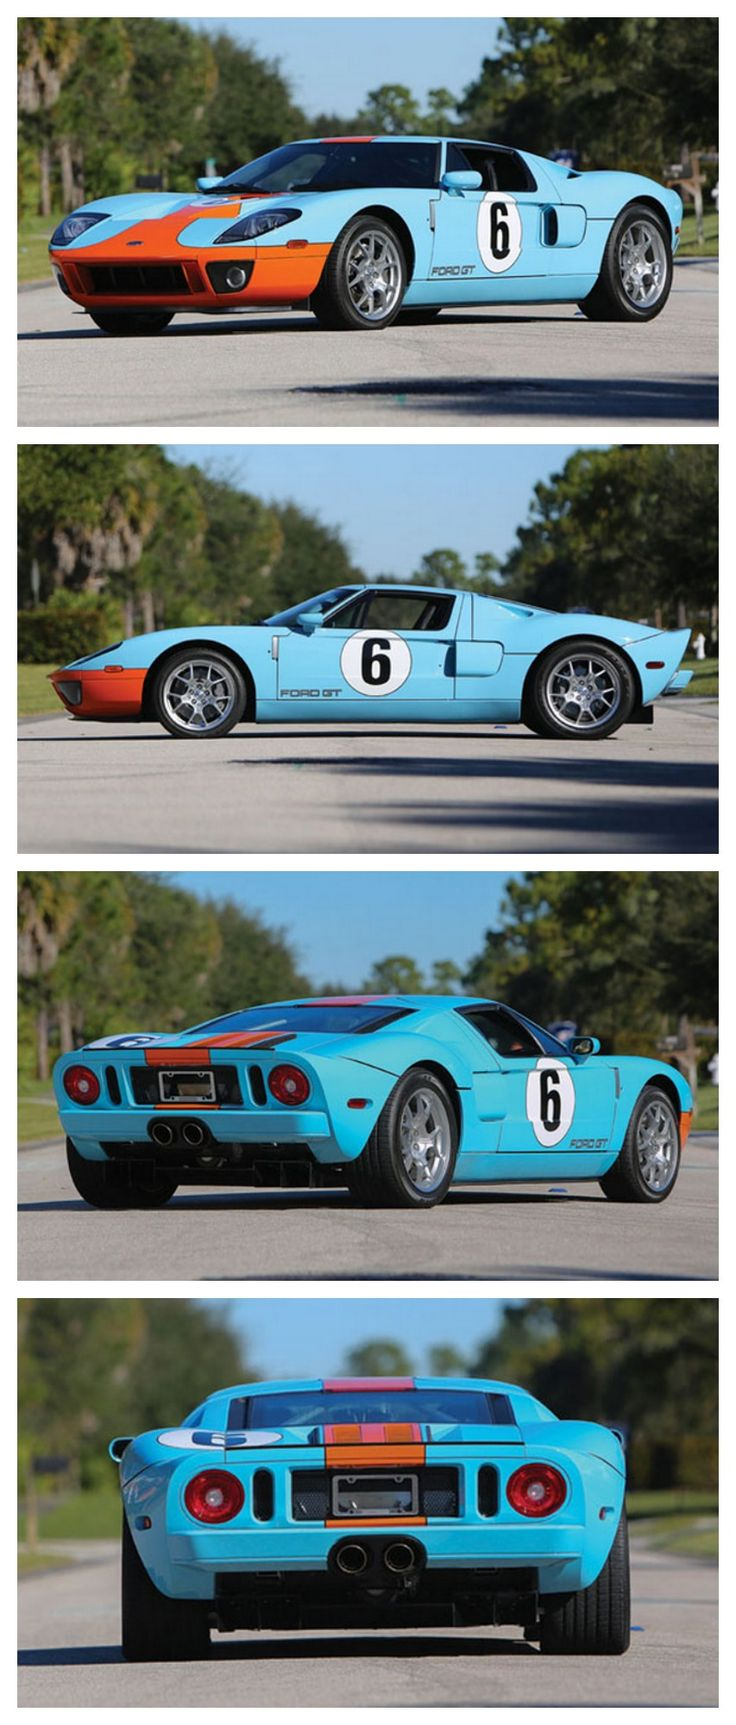 America's very own supercar - the Ford GT Heritage Edition #FastandFuriousFriday